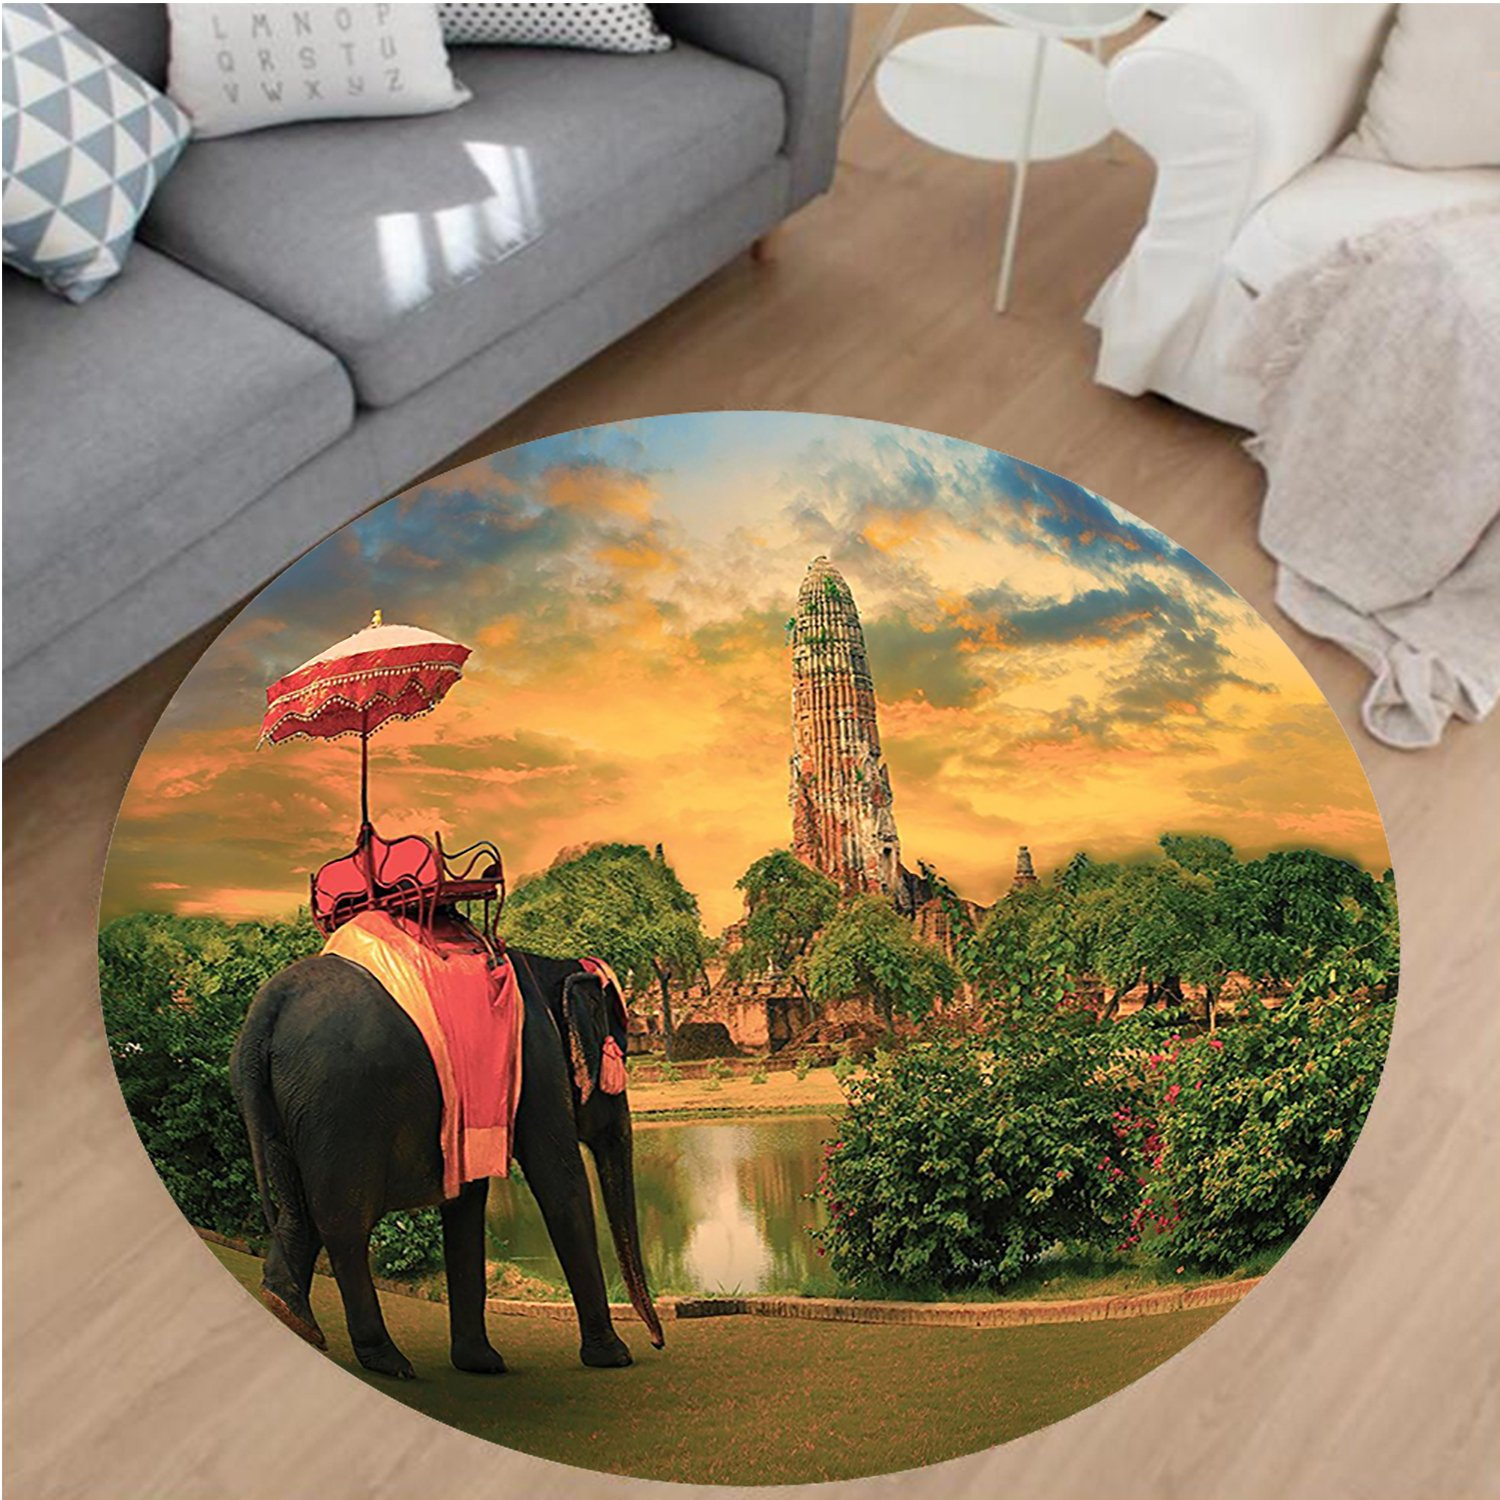 Nalahome Modern Flannel Microfiber Non-Slip Machine Washable Round Area Rug-hants Decor Elephant Dressing With Thai Kingdom Tradition Accessories Pagoda In Ayuthaya area rugs Home Decor-Round 67'' by Nalahome